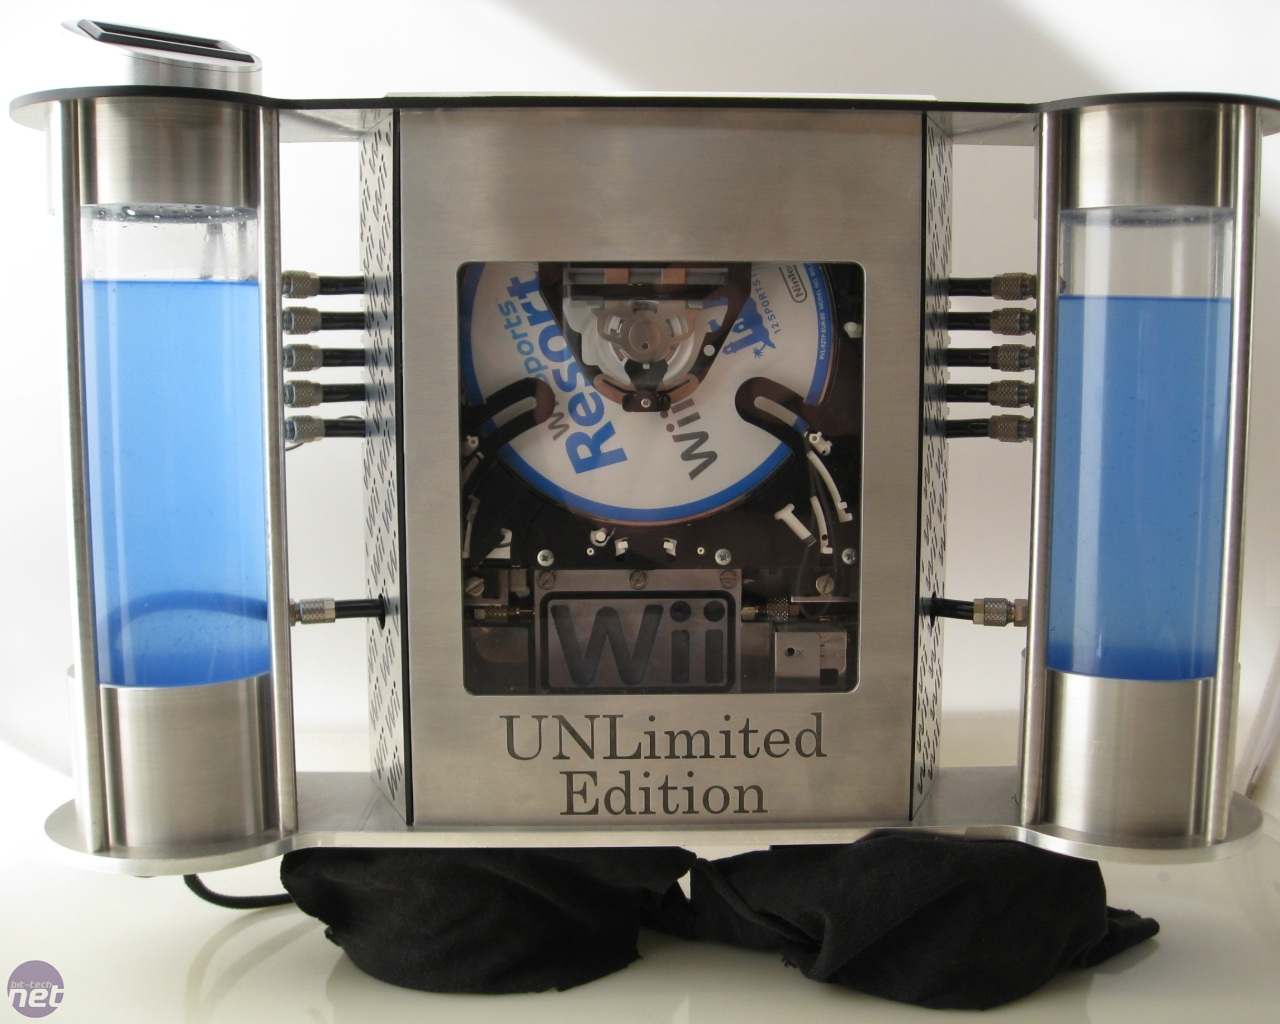 Nintendo Wii Unlimited Edition Case Mod